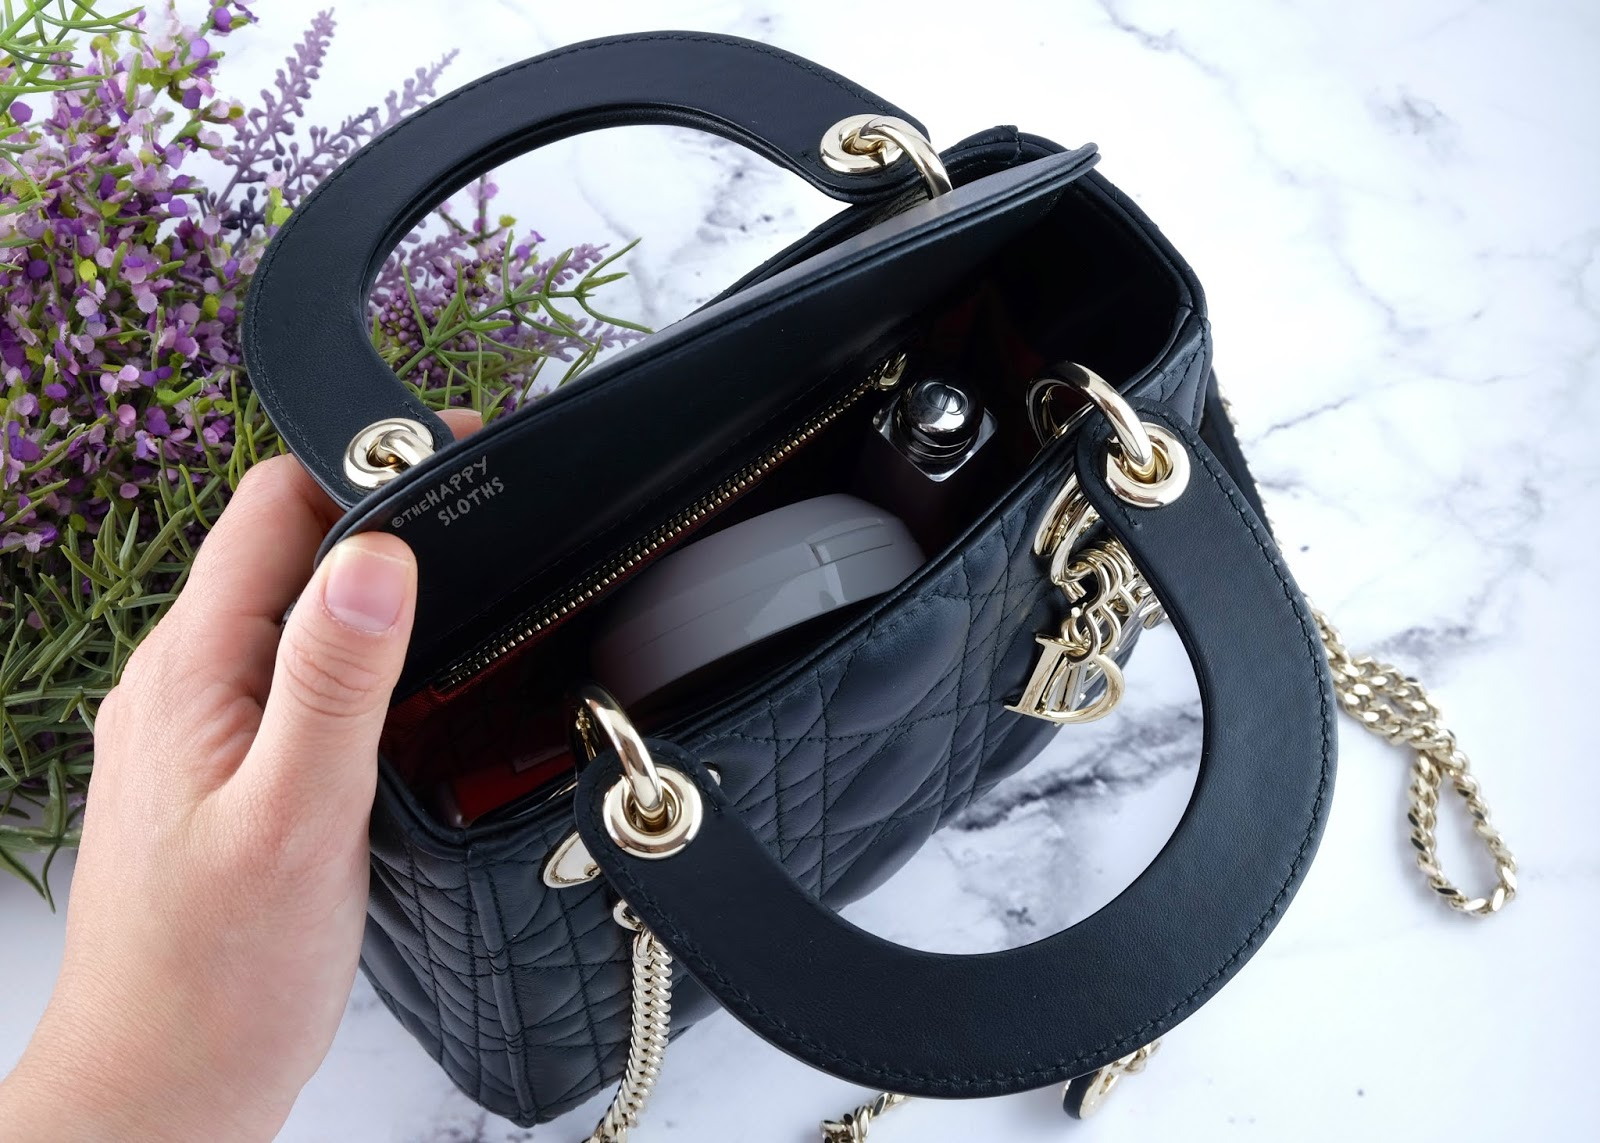 Dior | Mini Lady Dior Lambskin Bag in Black with Light Gold Hardware: Review